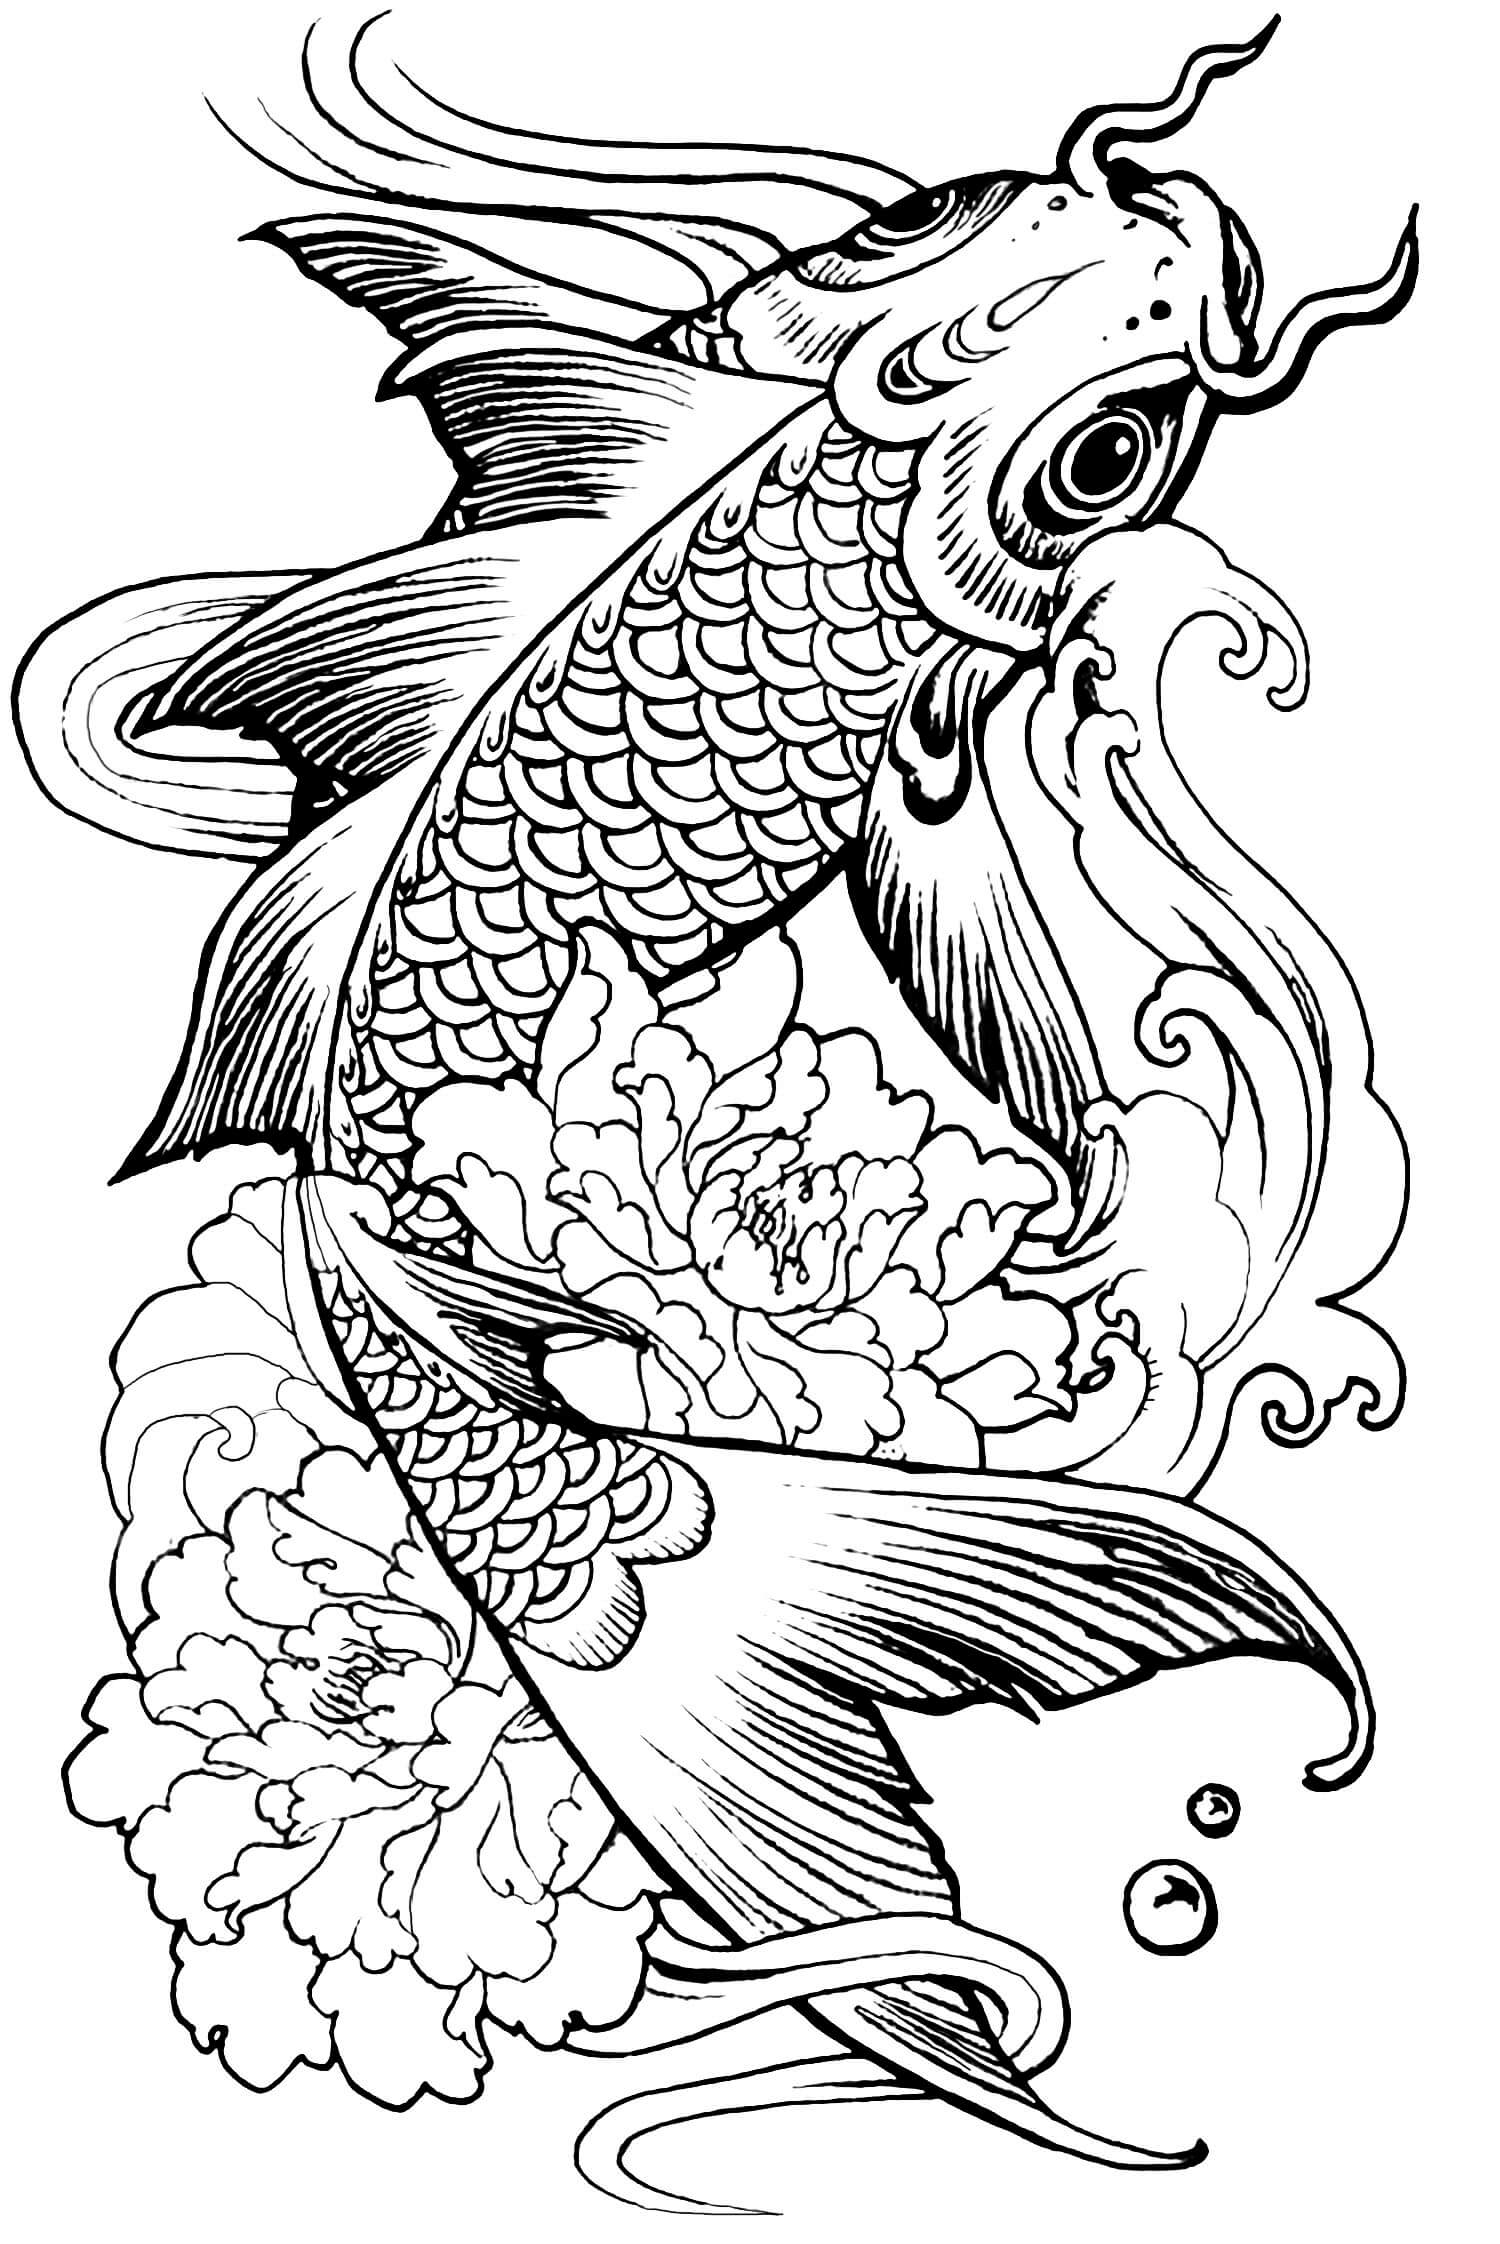 coloring pictures printable animal coloring pages best coloring pages for kids pictures printable coloring